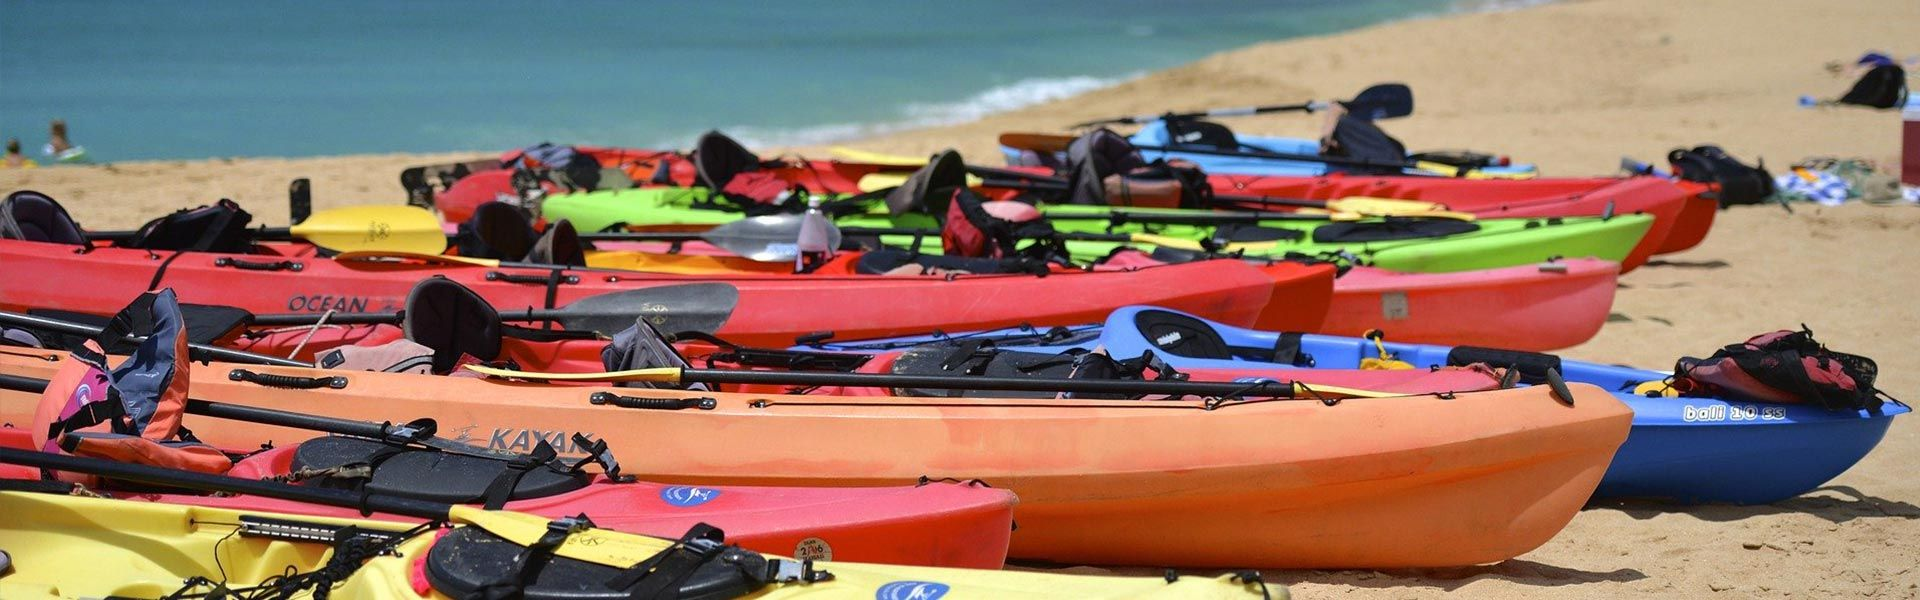 kayak-rental-header-2